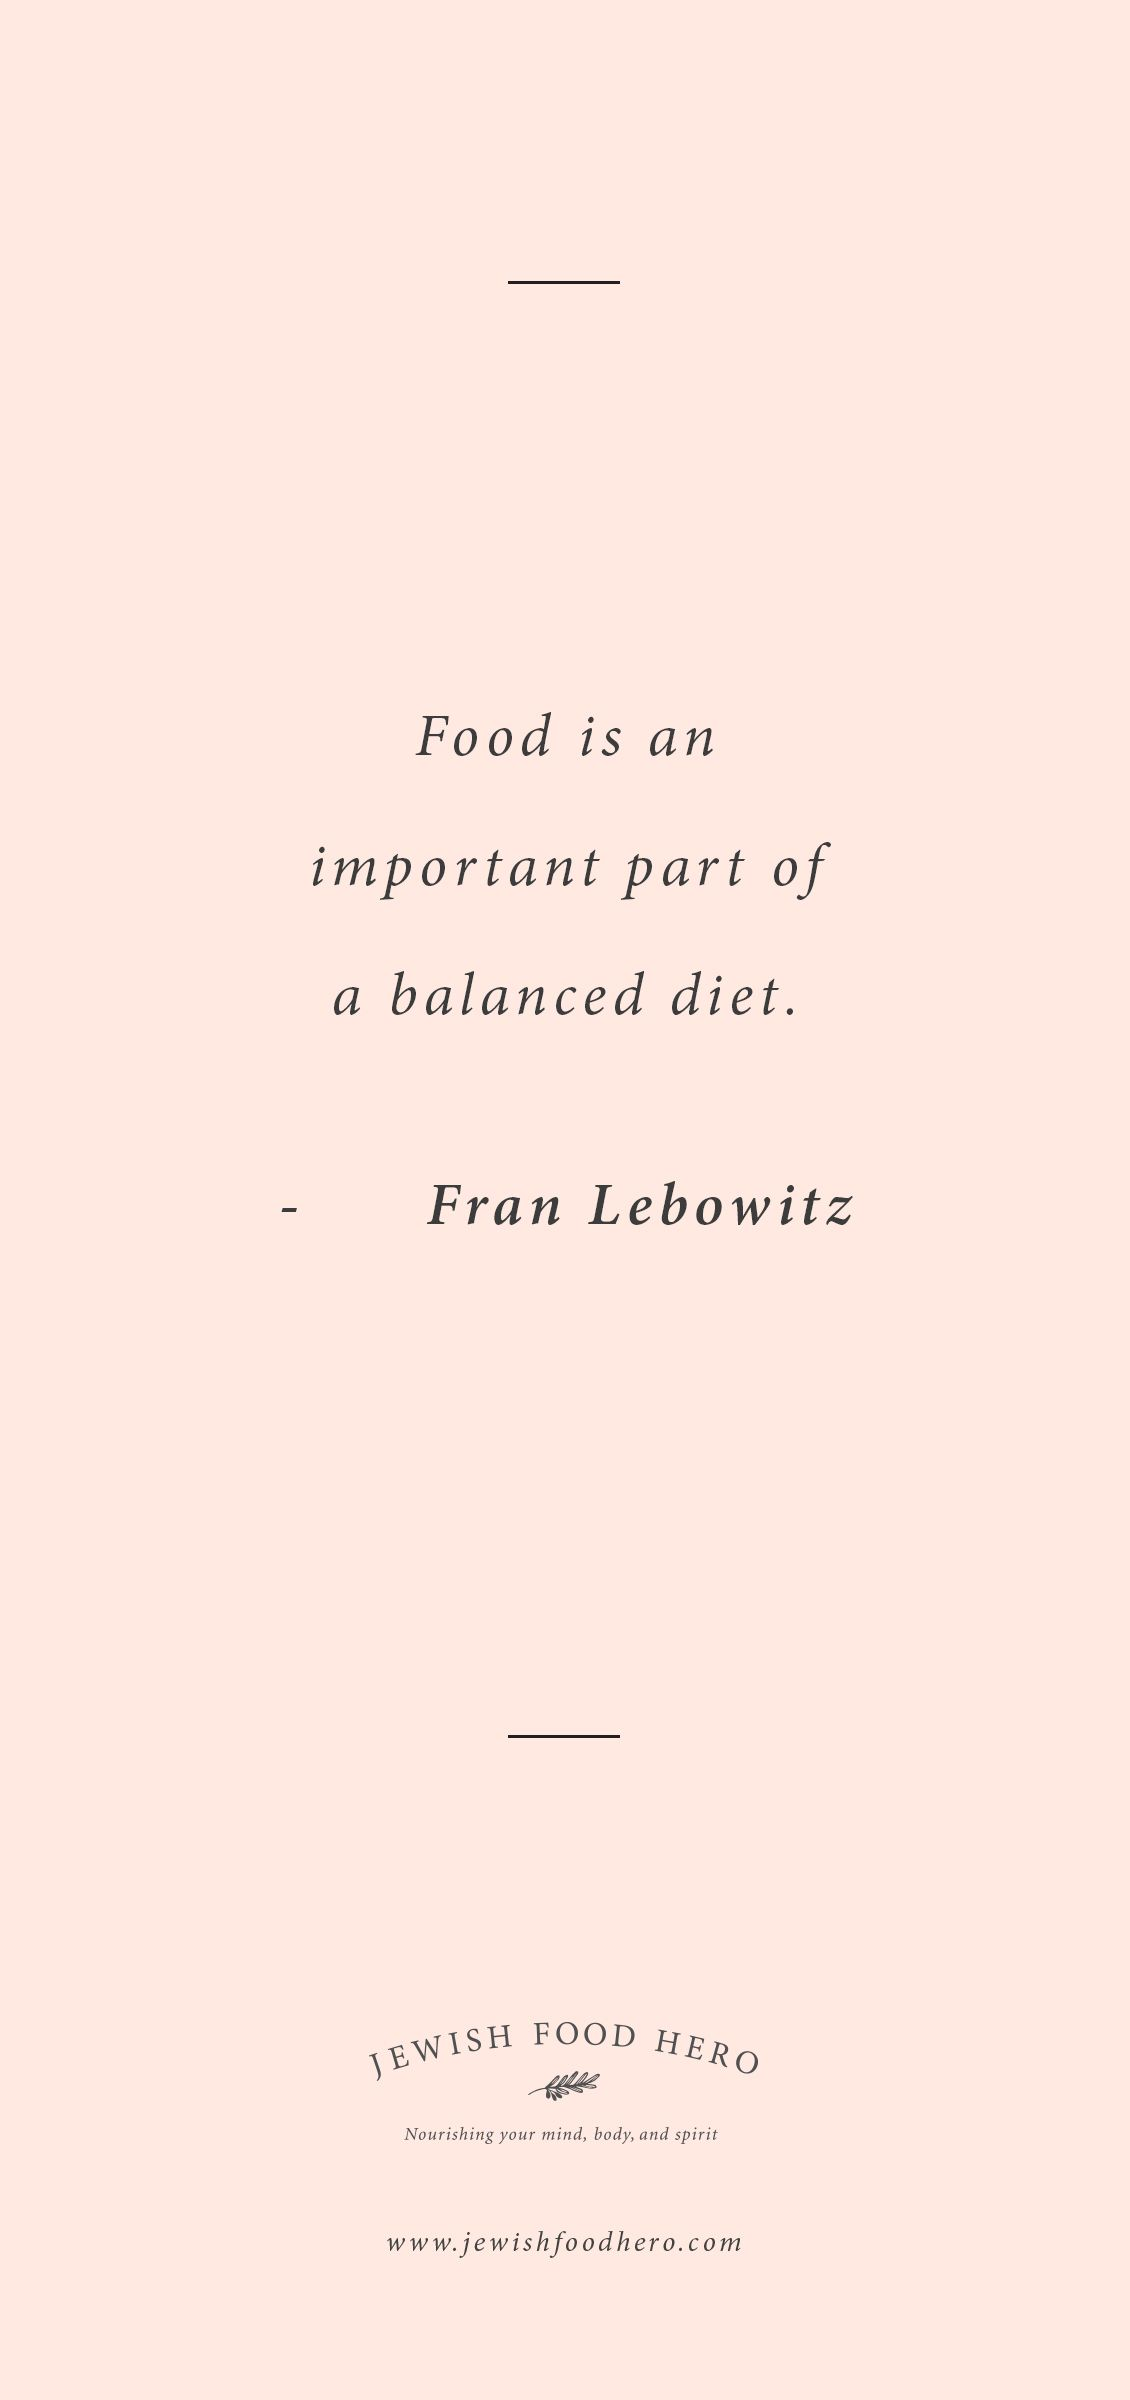 Finding Peace Quotes Fran Lebowitz Quote  From Jewish Food Hero  Pinterest  Finding